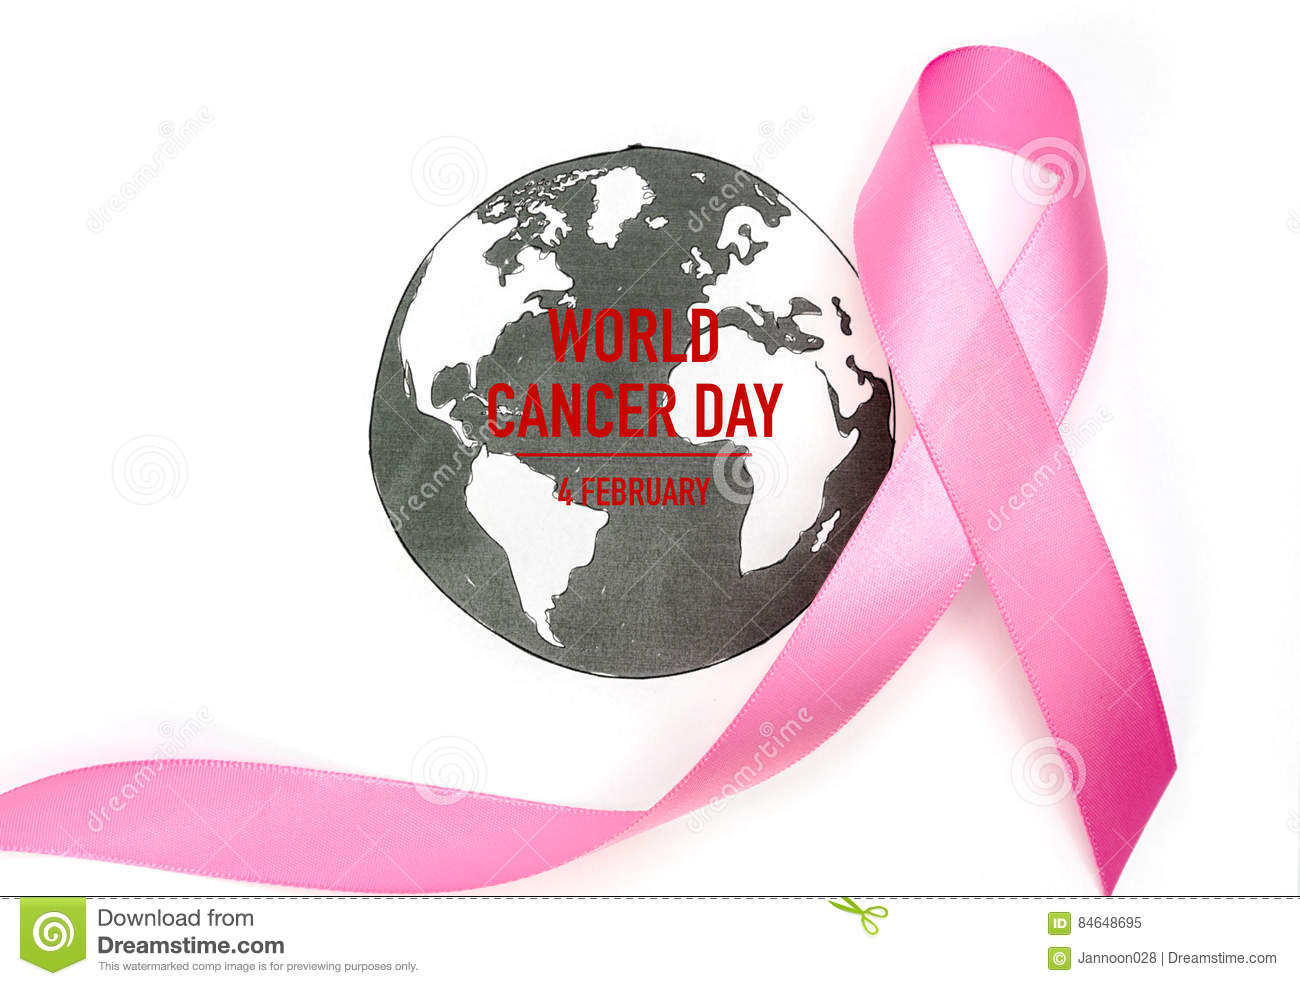 World cancer day : Breast Cancer Awareness Ribbon on world map .